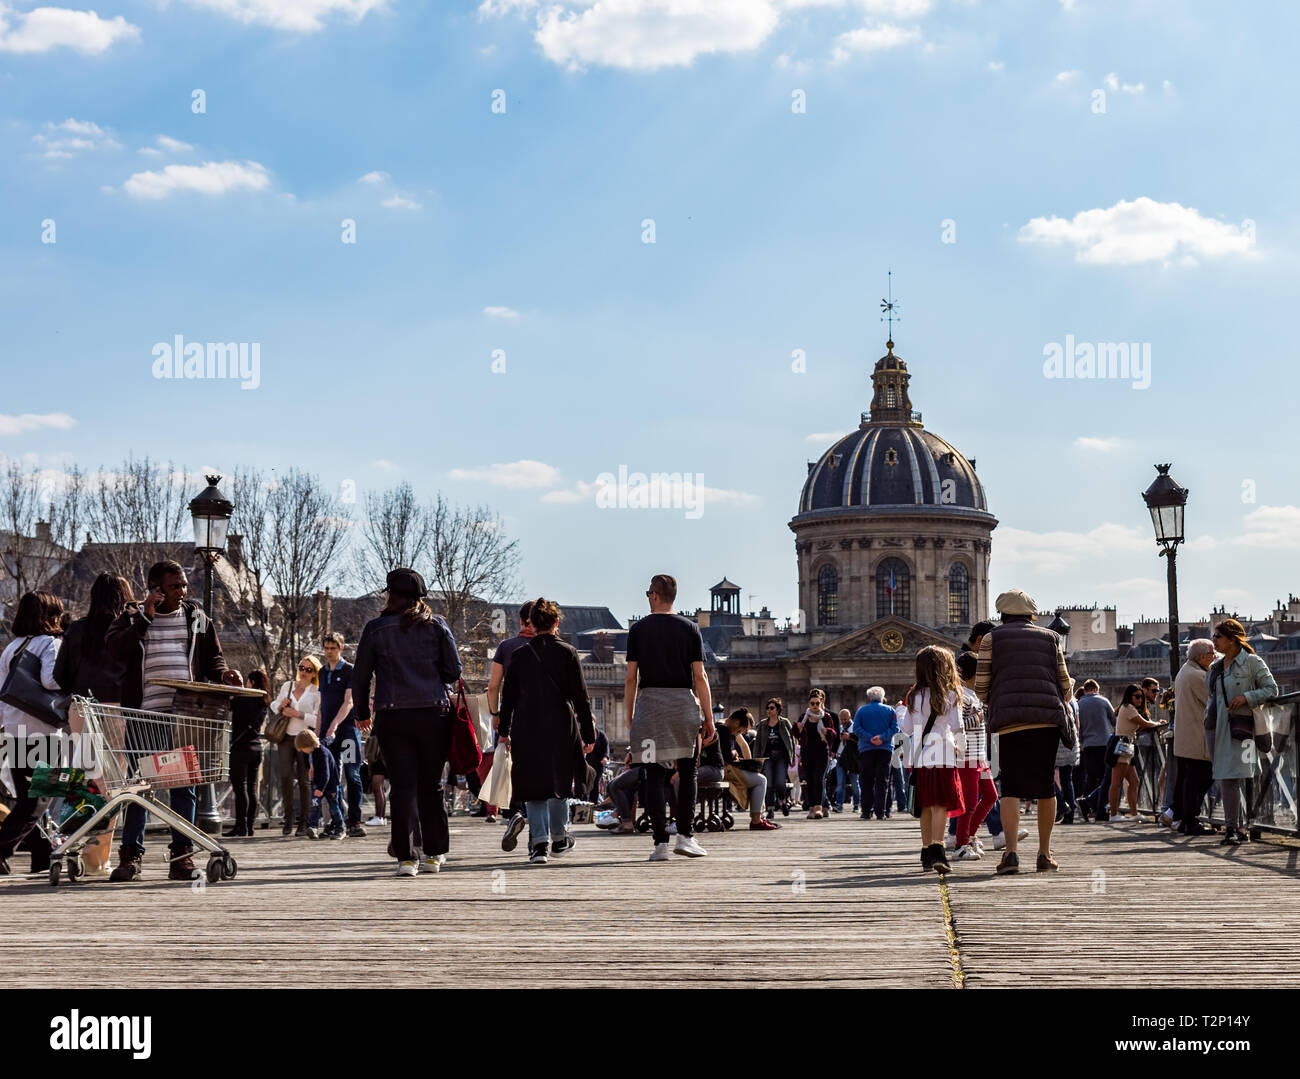 People walking on Pont des Arts bridge on the Seine river - Paris - Stock Image